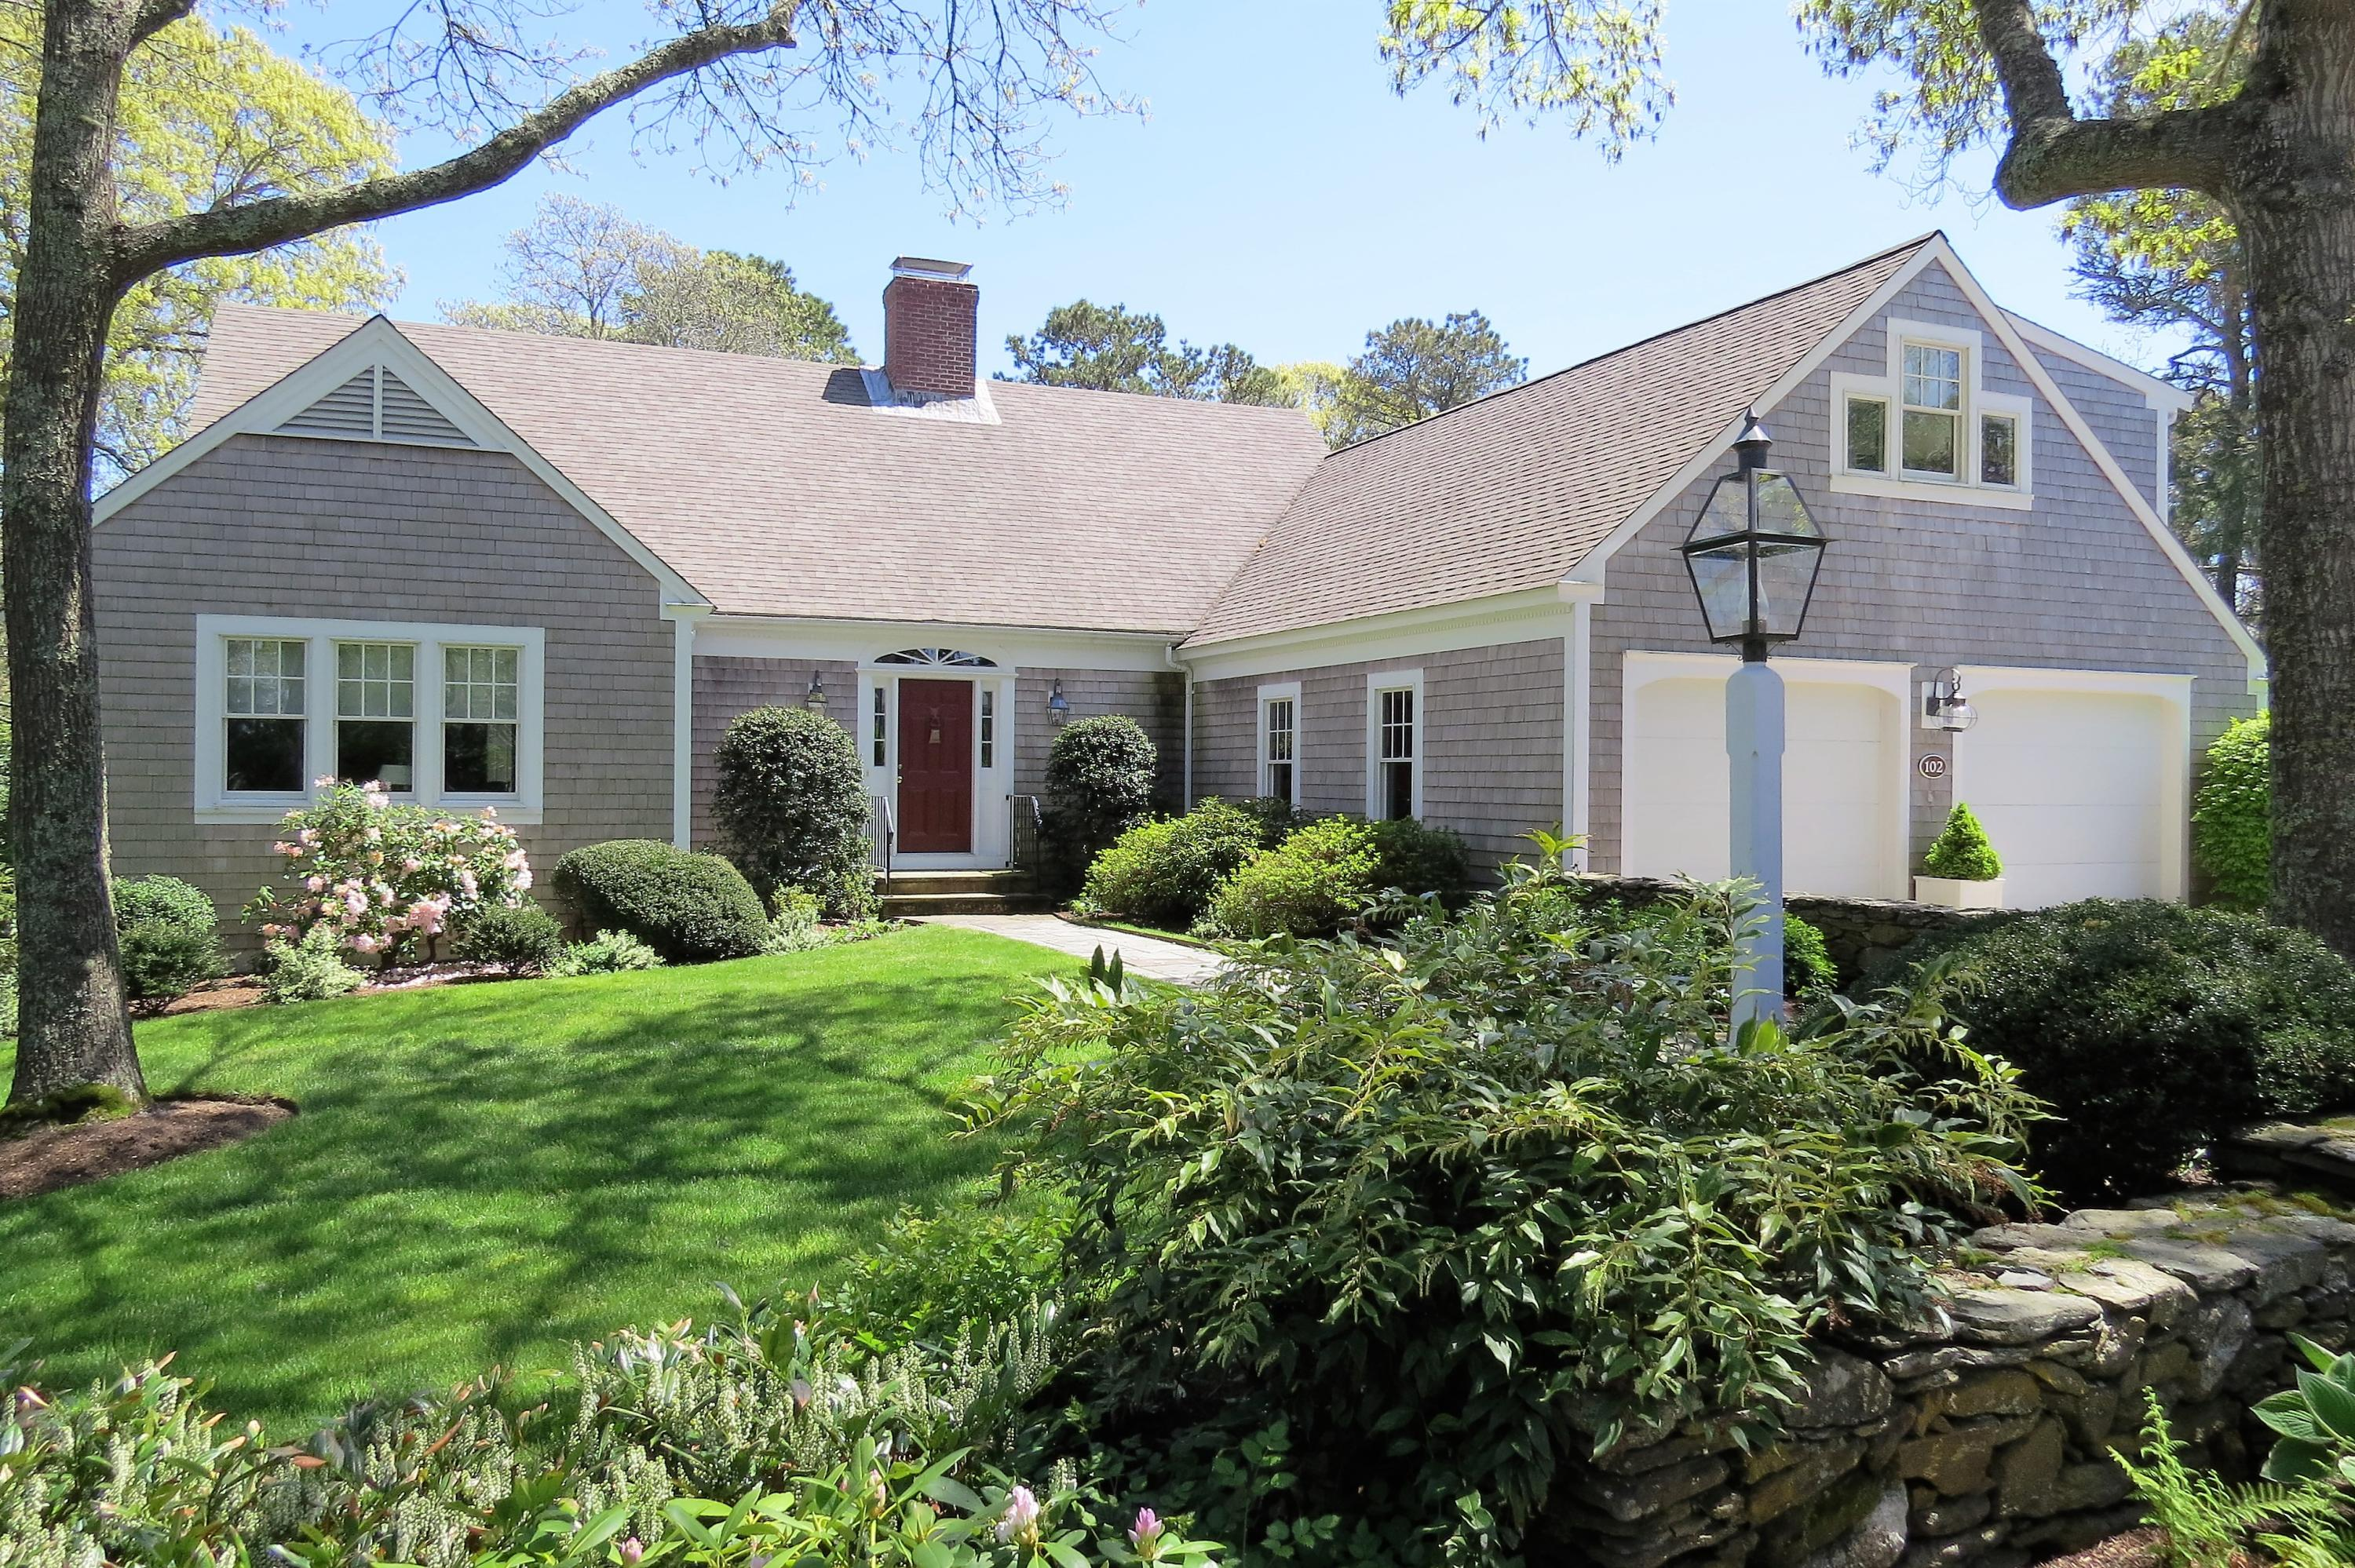 Chatham Real Estate - Cape Cod , 102 Fox Hill Road, Chatham MA, 02633   Listed at $1,395,000